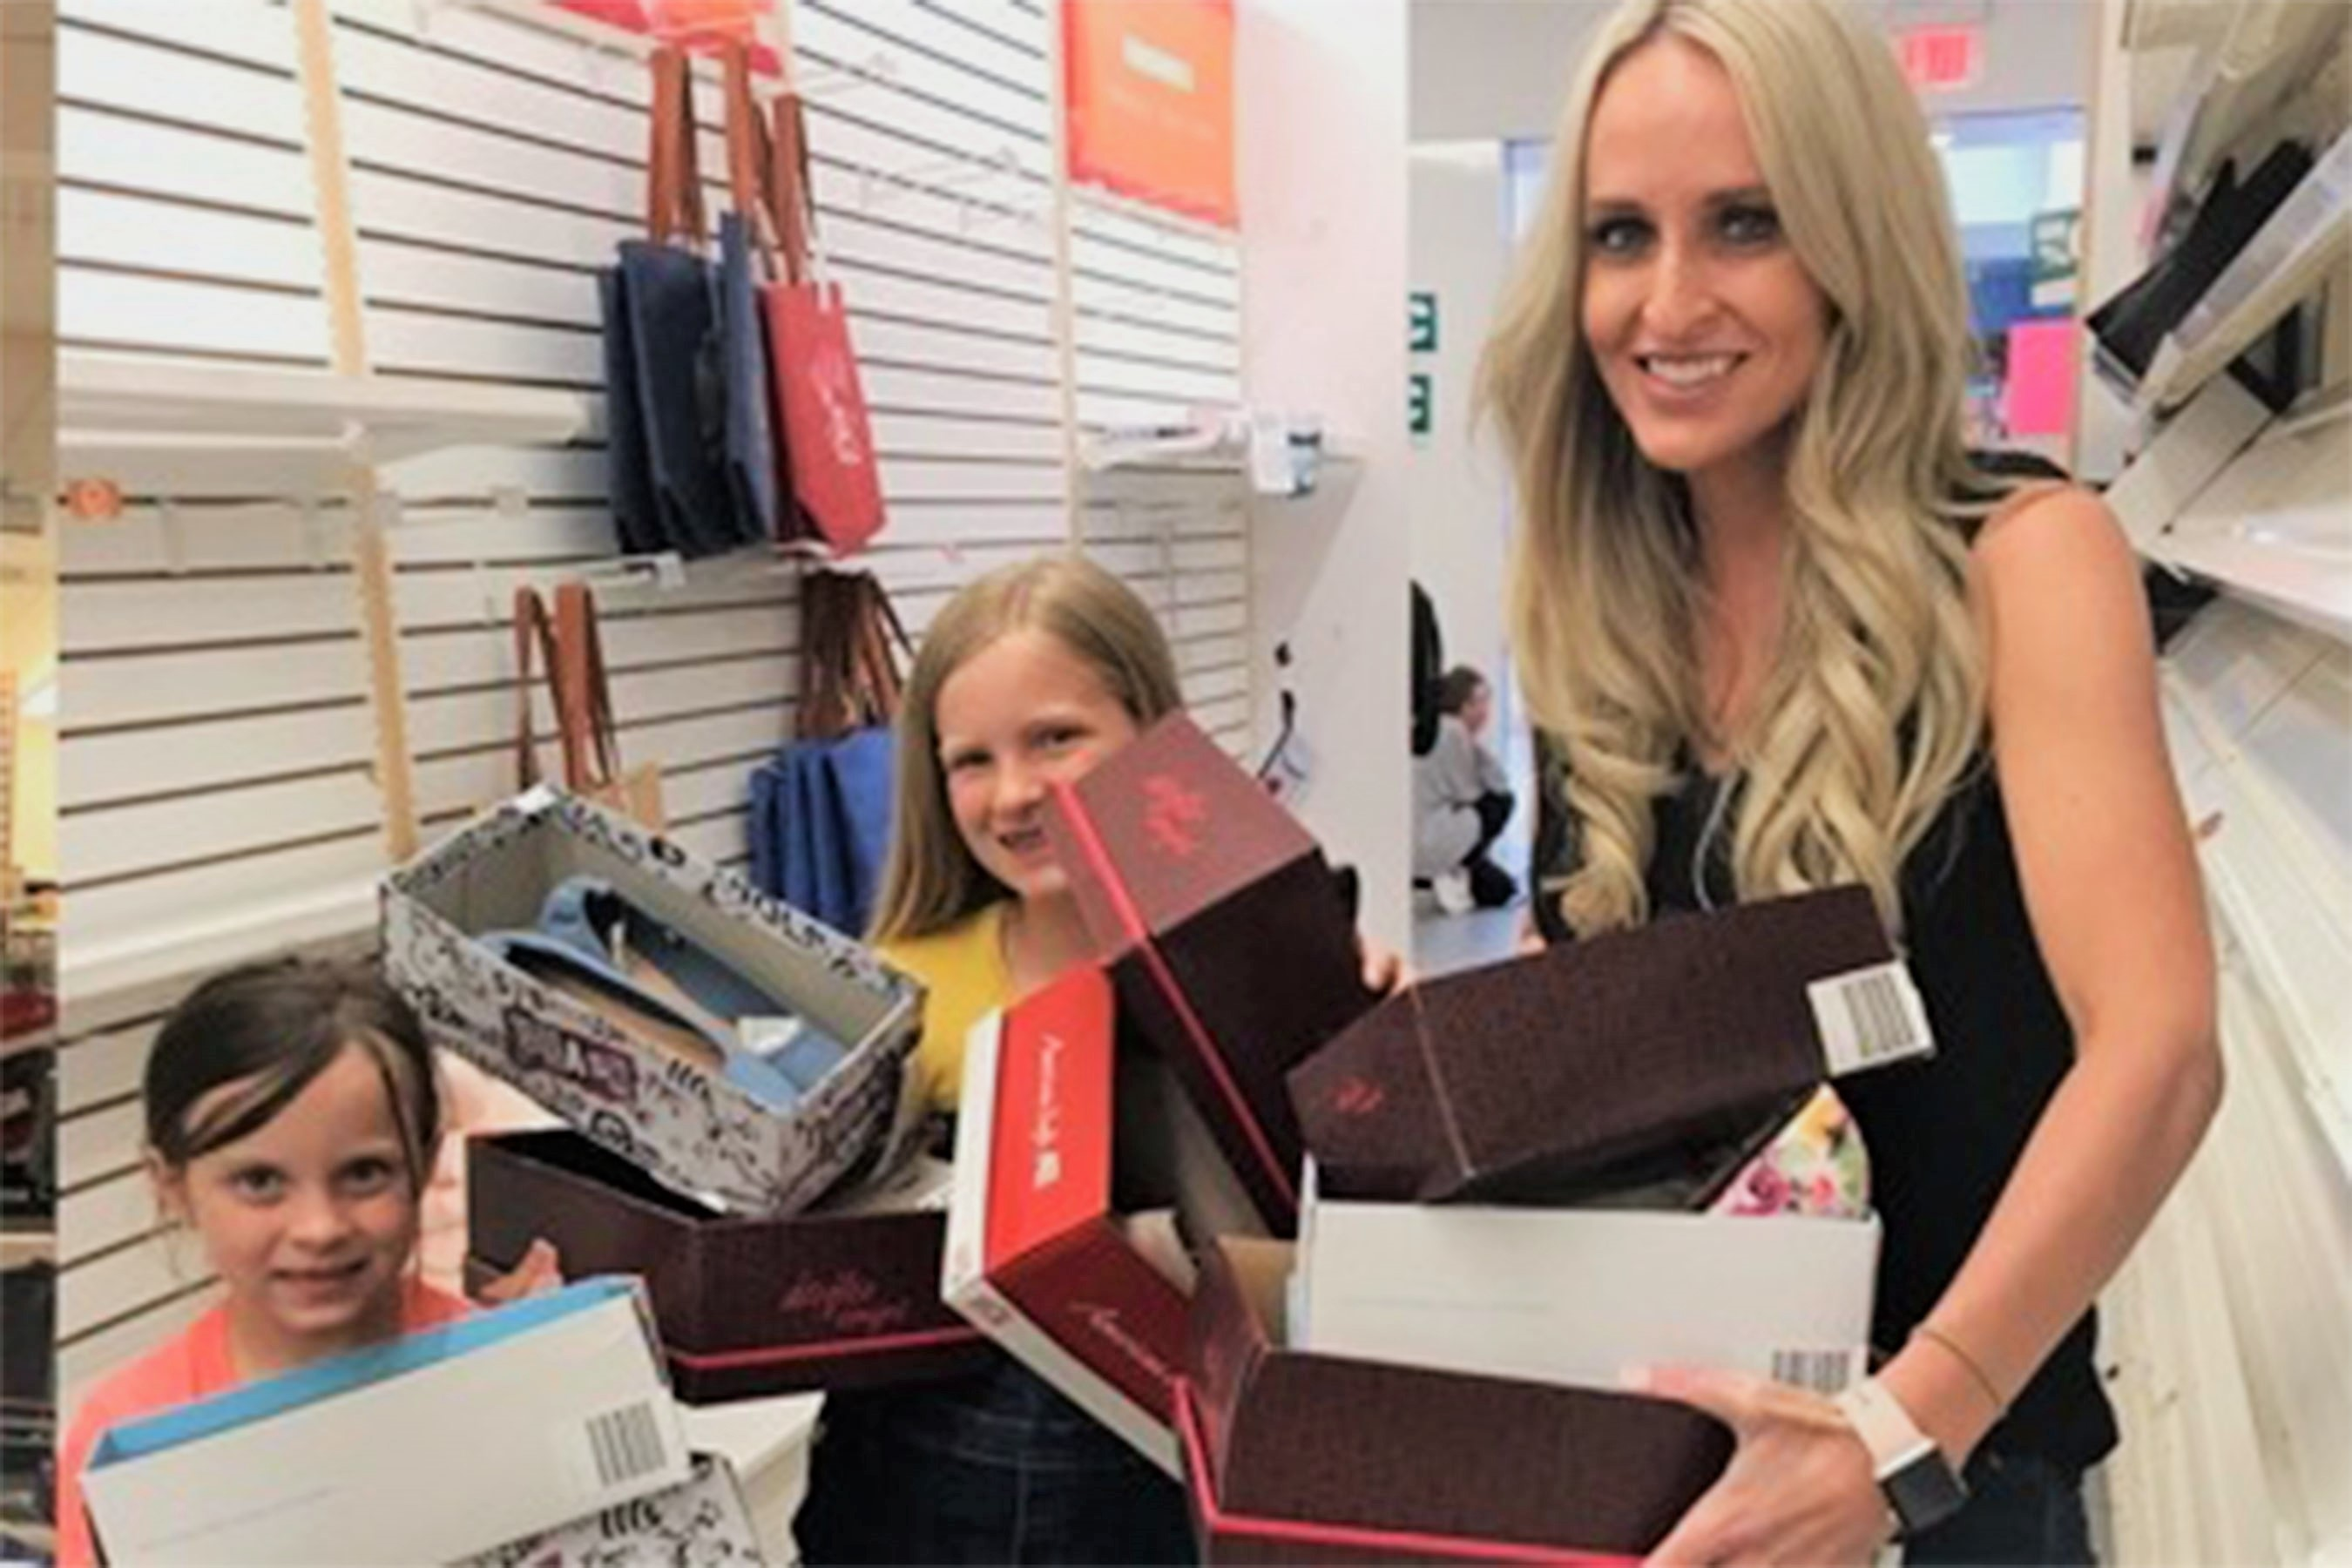 Carrie Jernigan and Children Holding Shoe Boxes at Payless